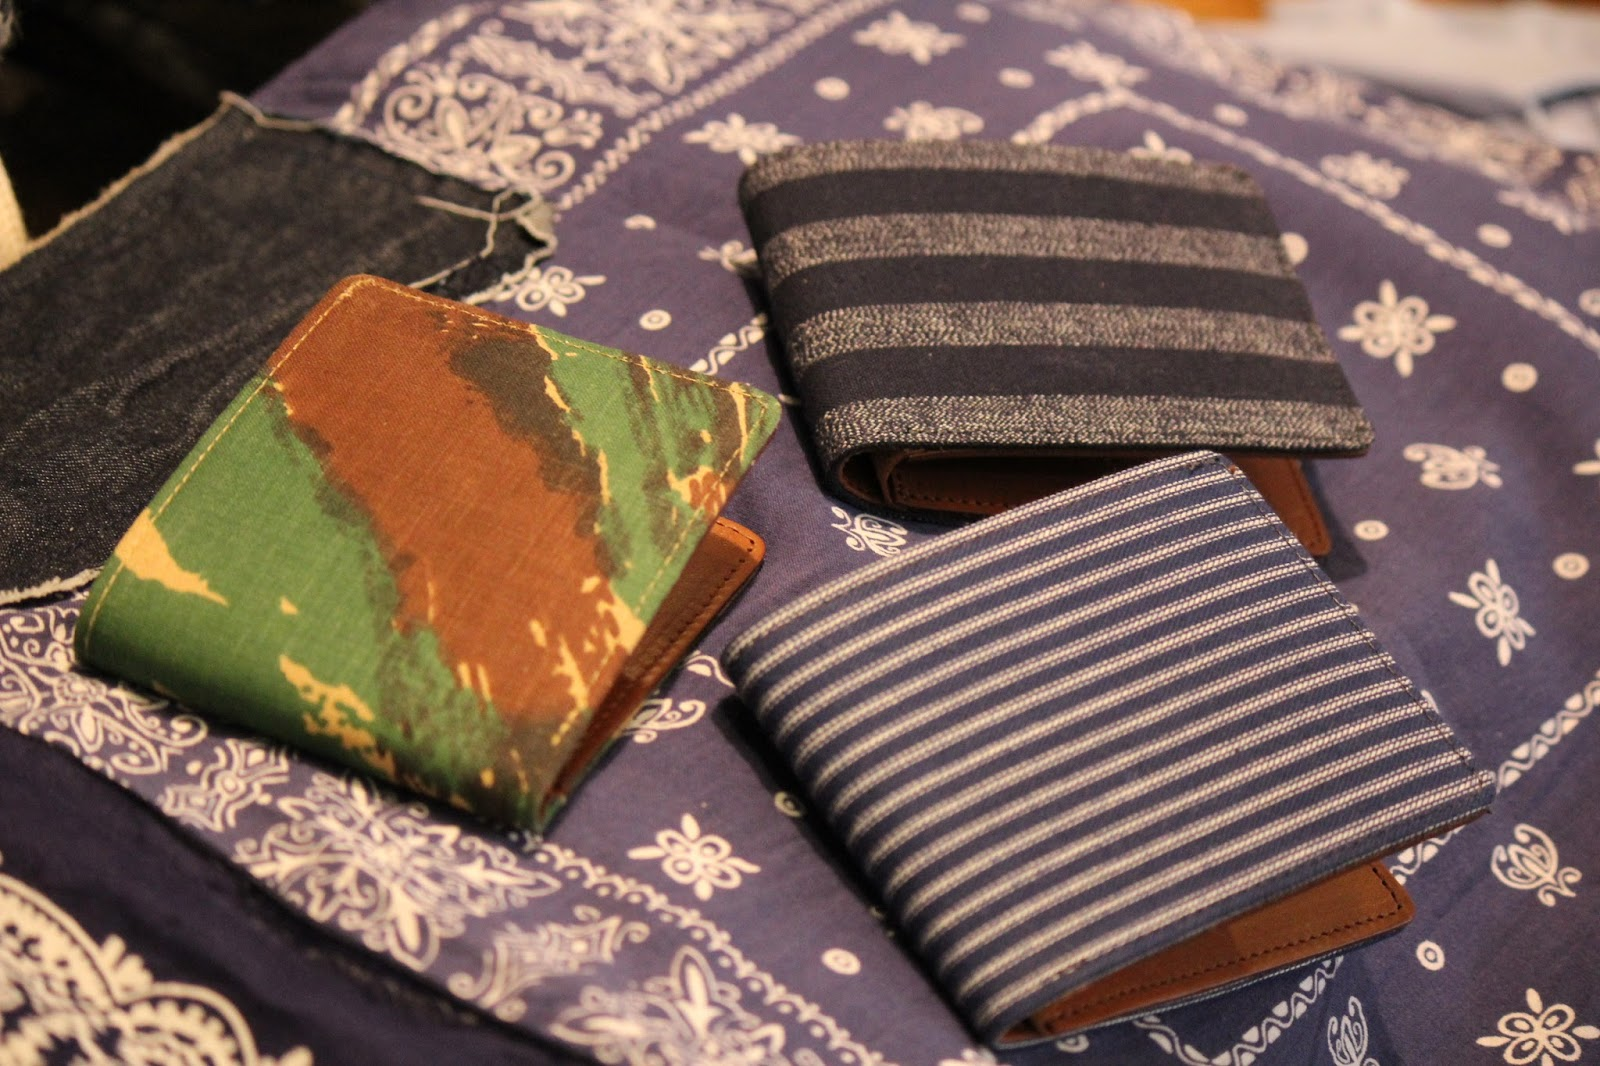 The Hillside wallet madeinusa ヒルサイド 財布